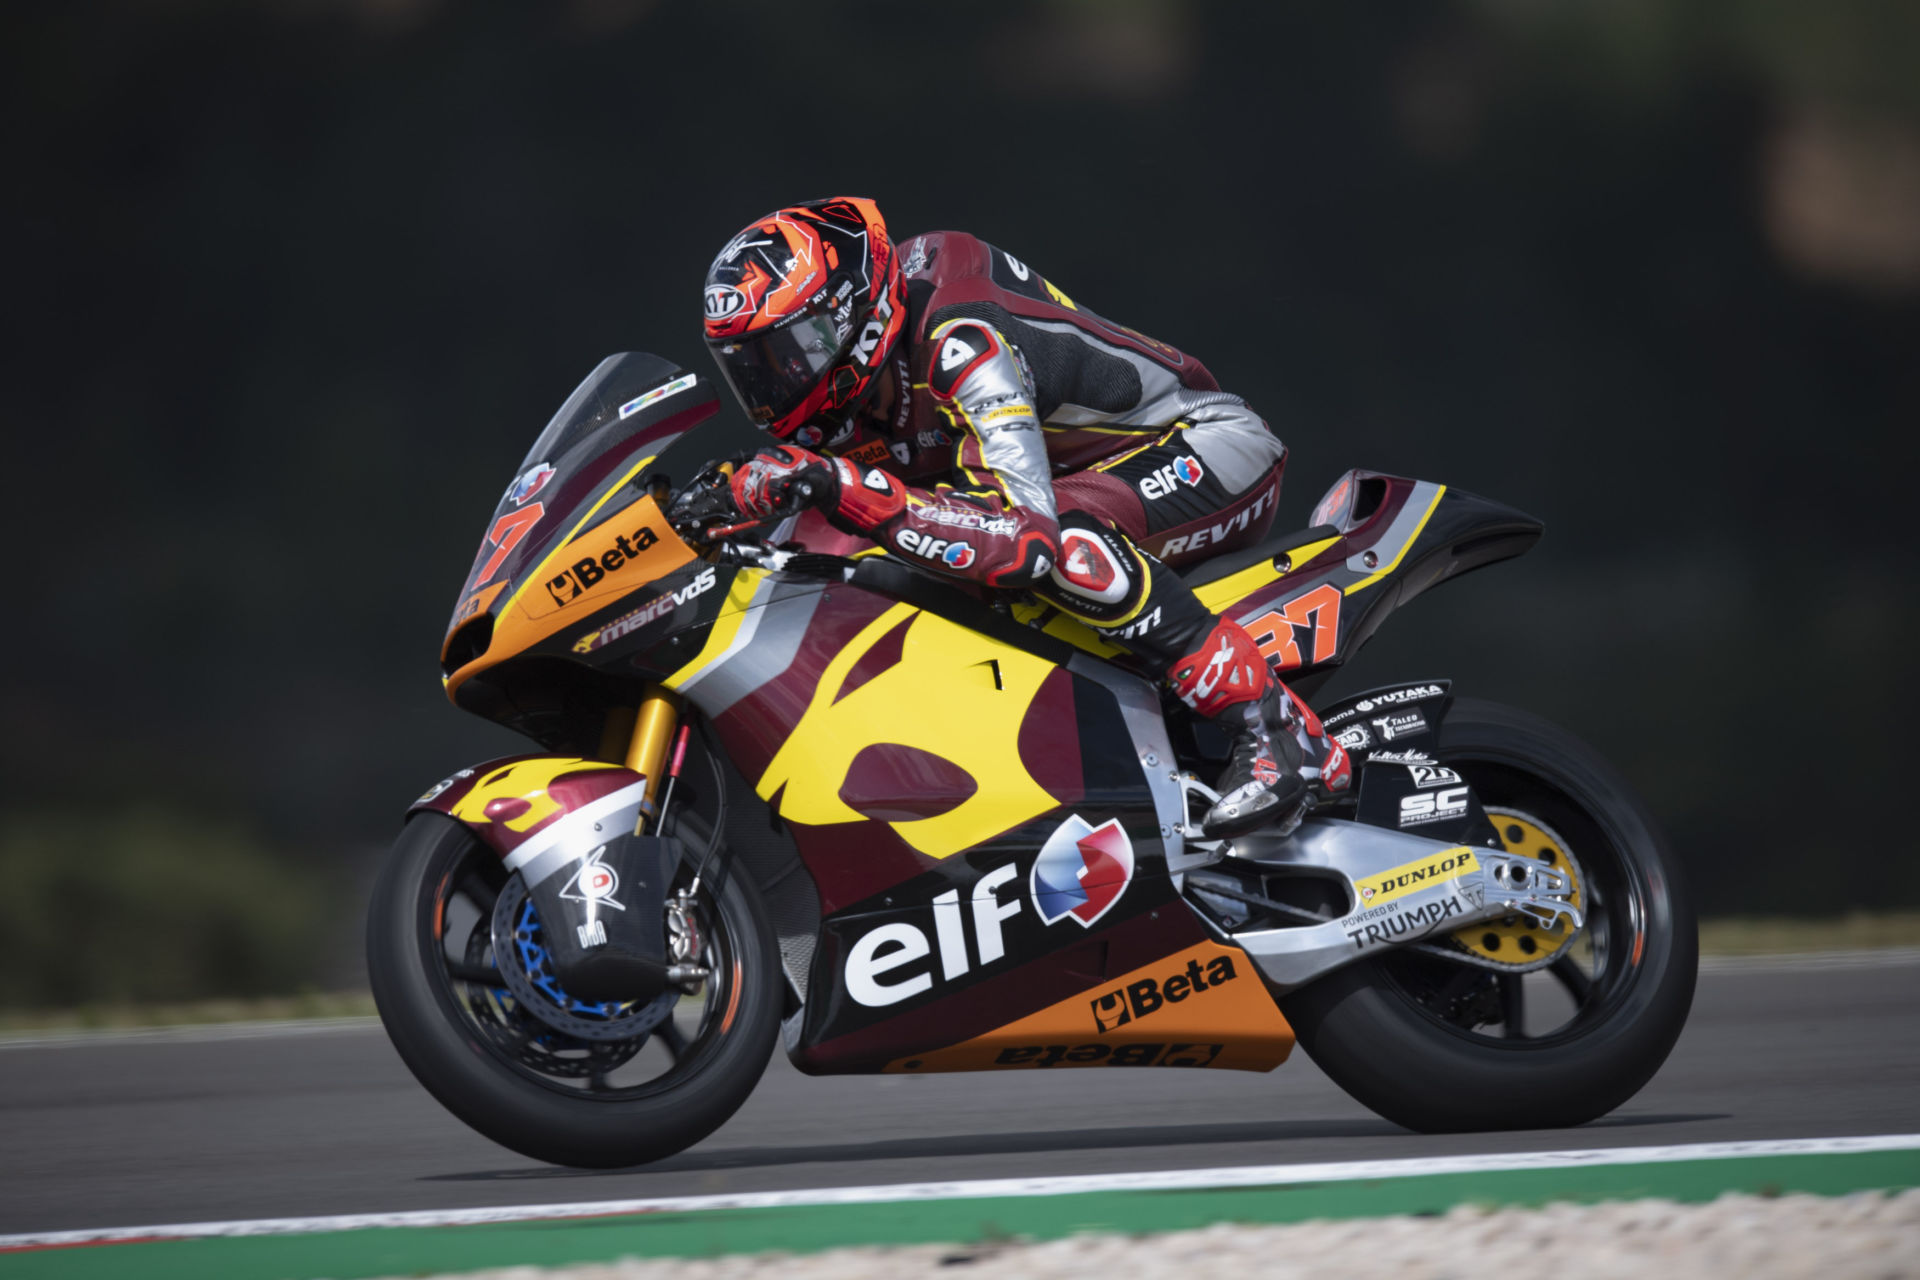 Moto2: Lowes On Pole, Roberts P8, Beaubier P13 At Portimao (Updated)